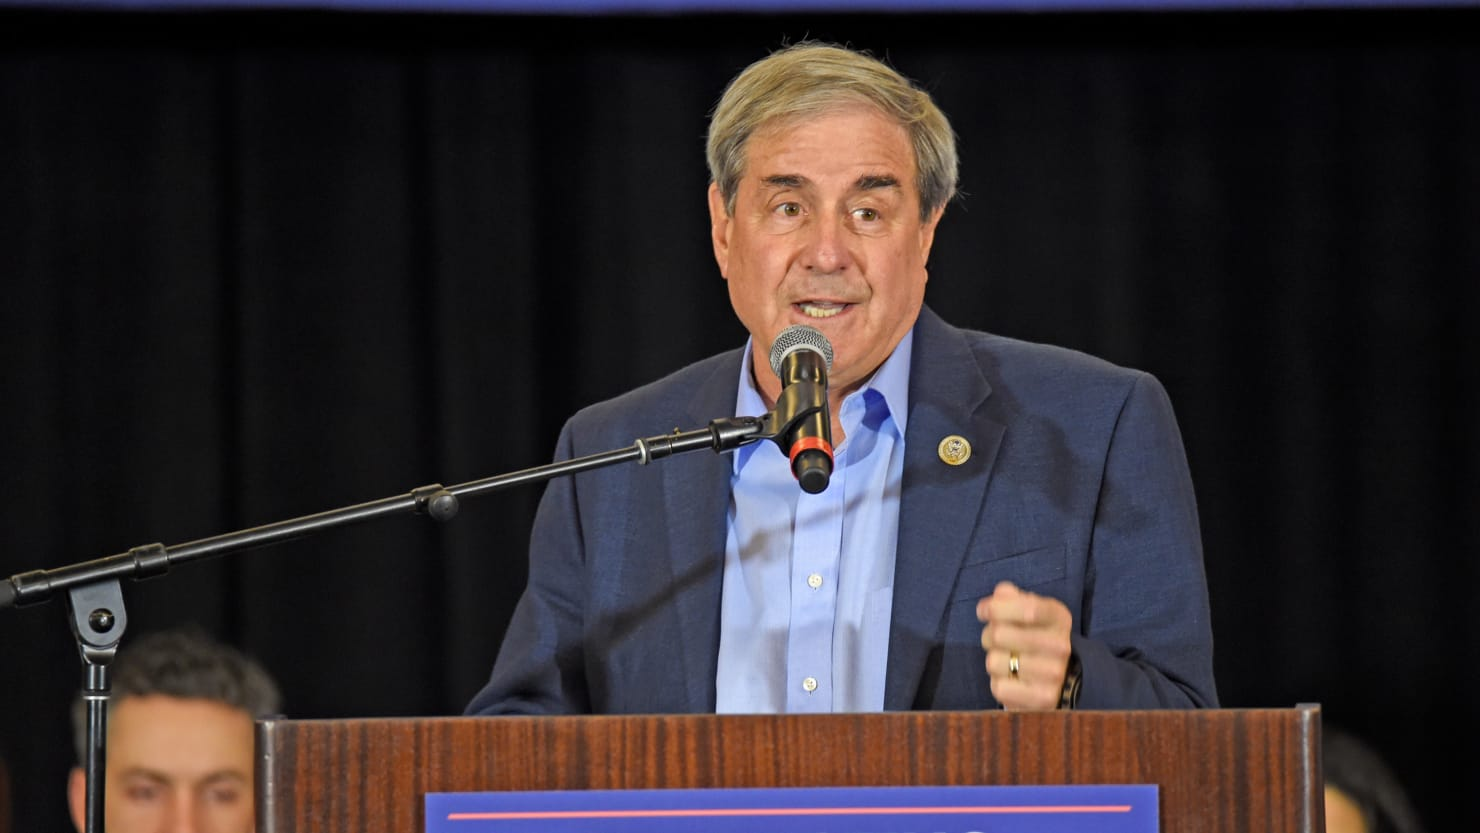 John Yarmuth, Chairman of House Budget Committee, Buys Pot Stocks During Legal Weed Push